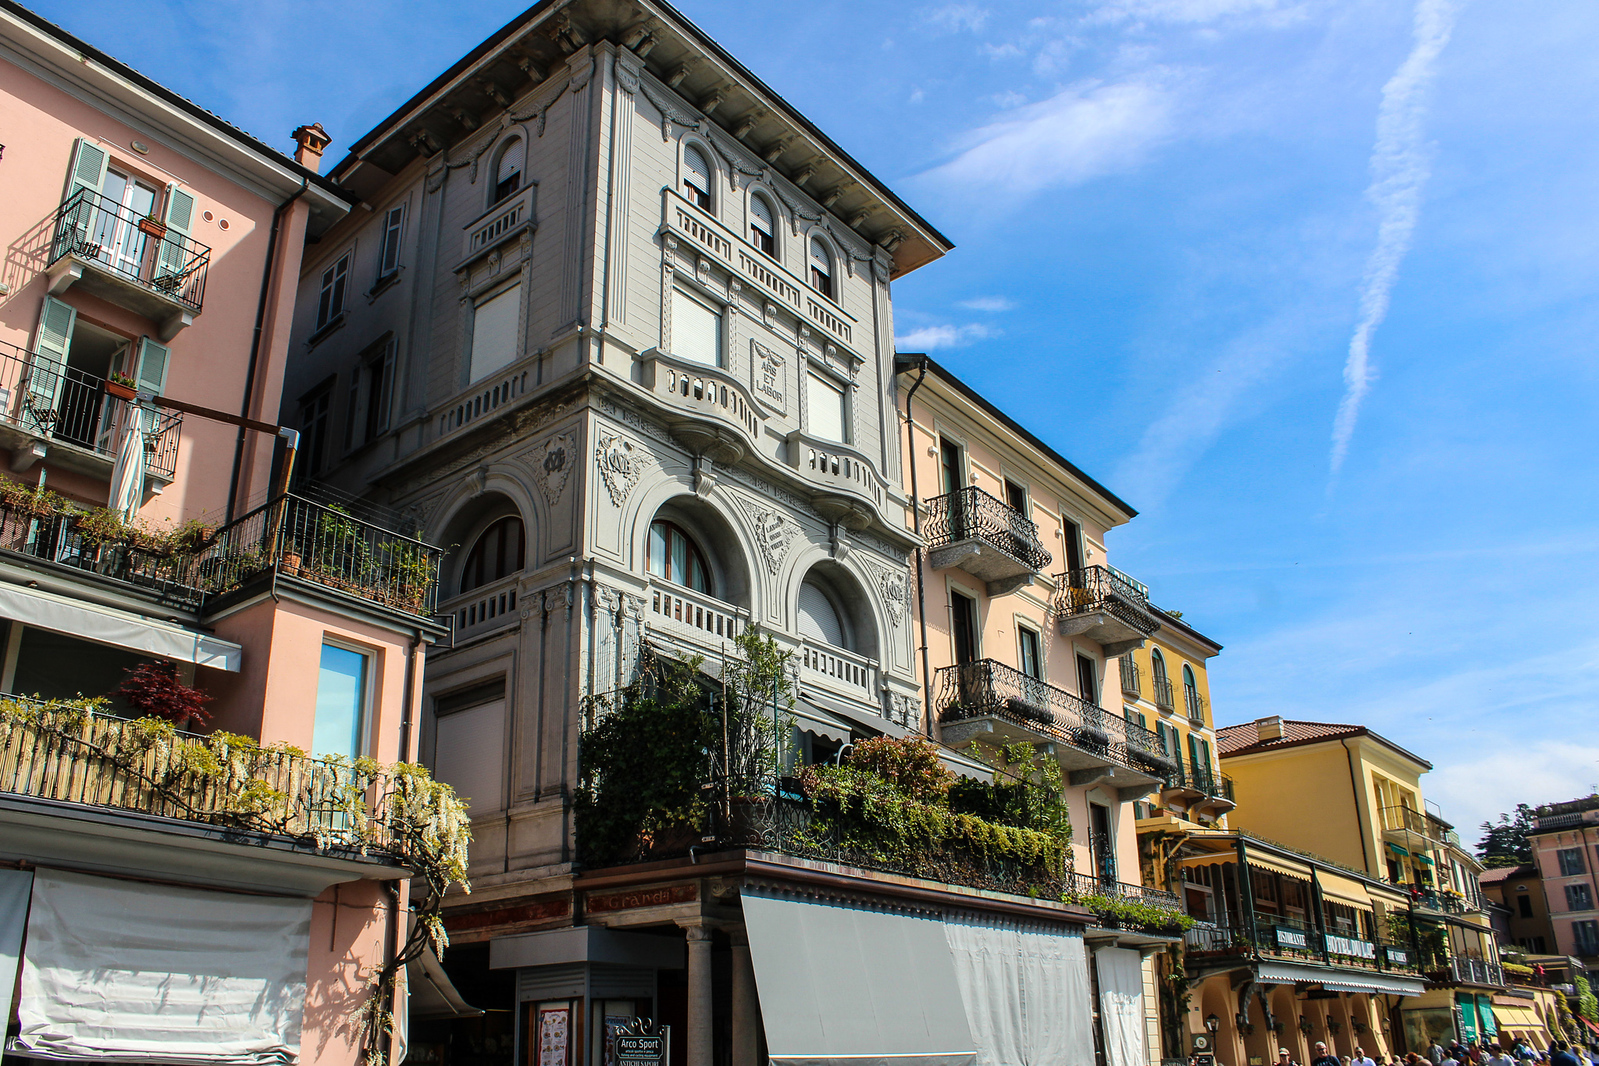 a day trip lake como from milan will take you to some delightful villages